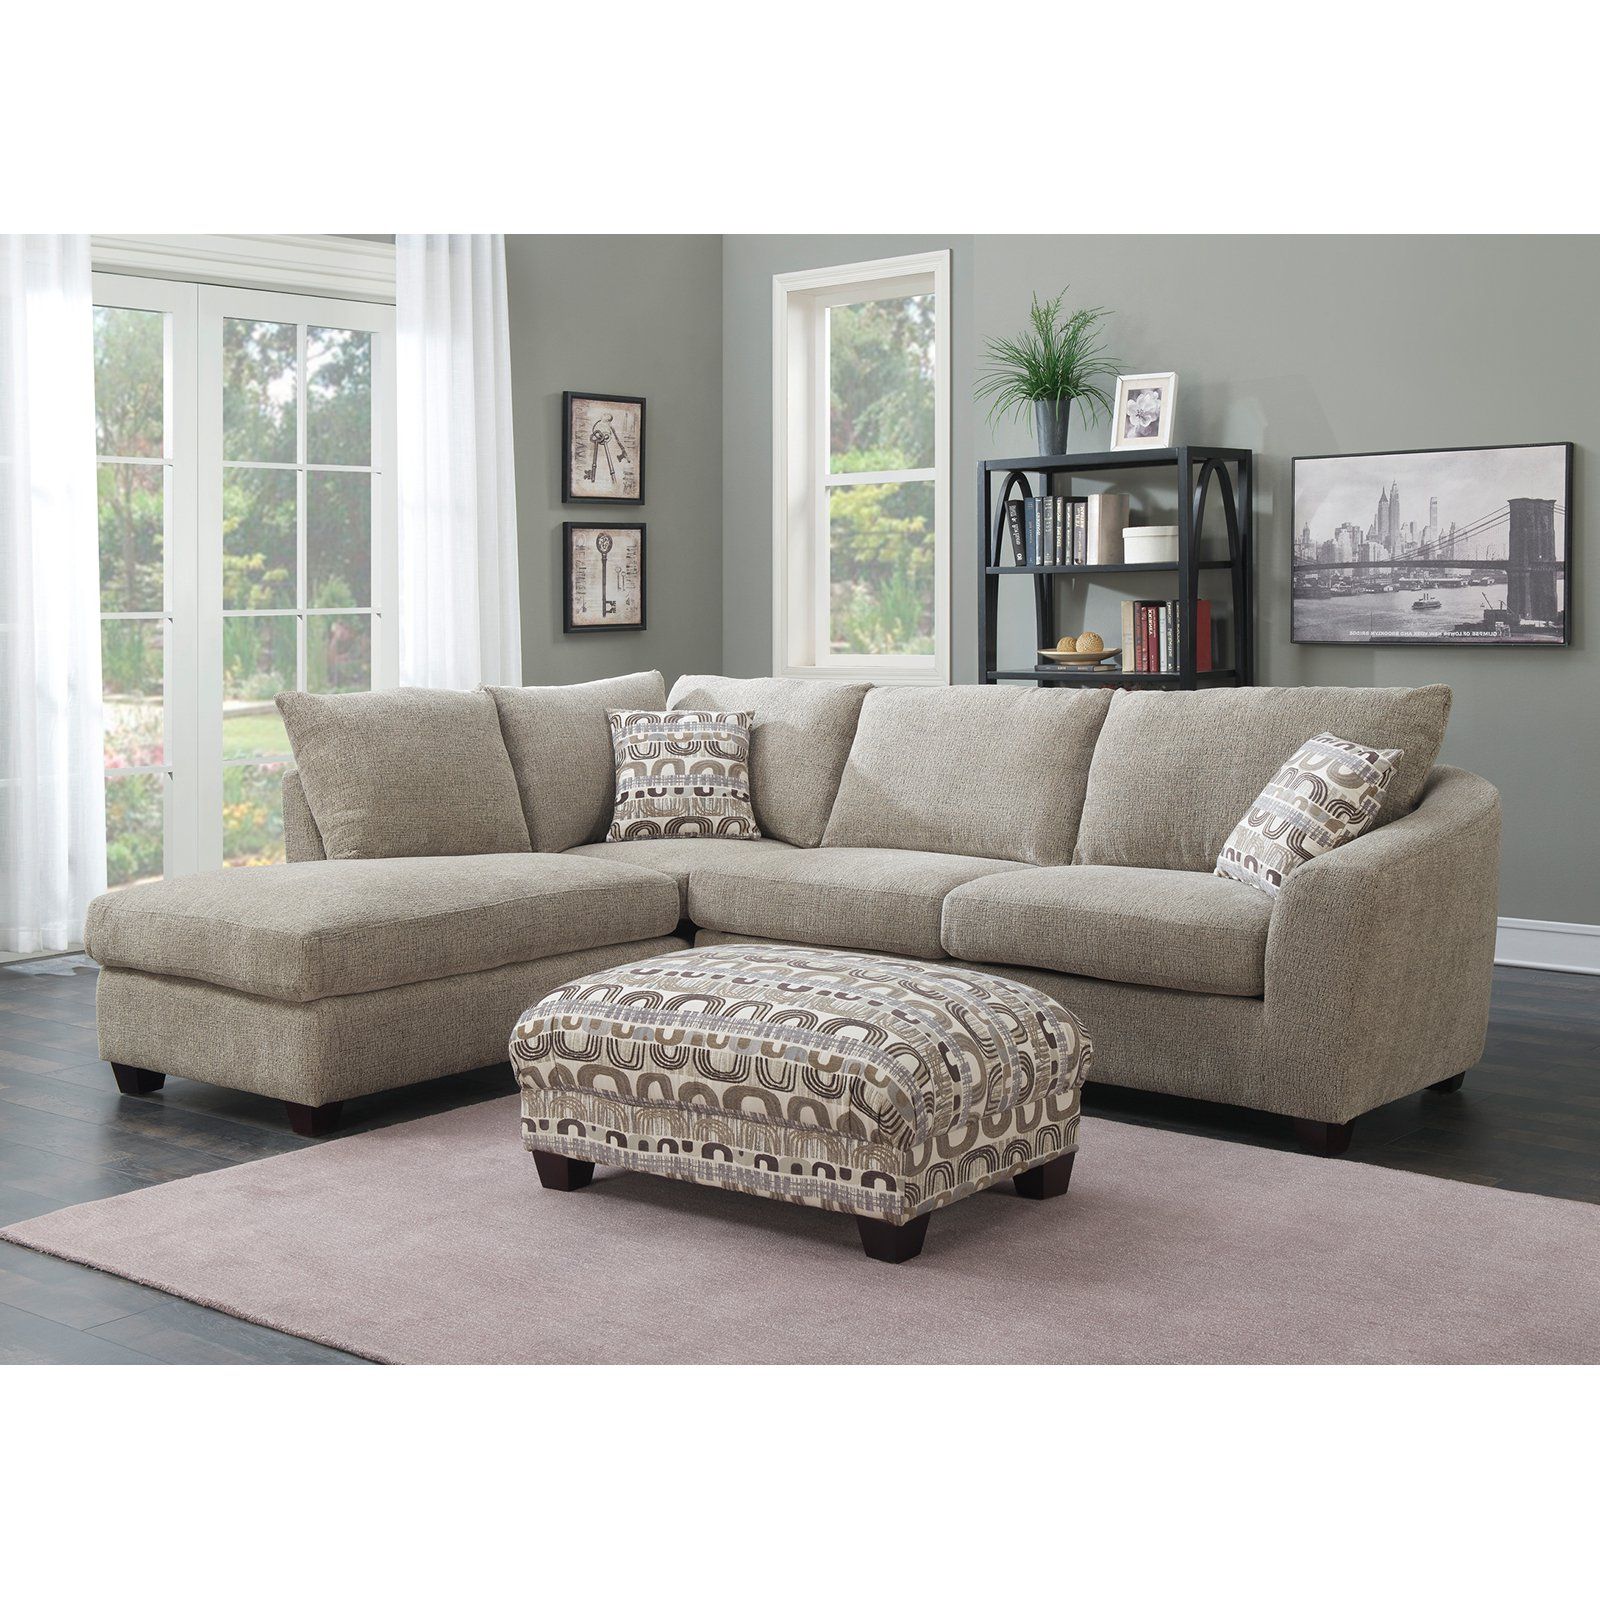 Popular 2 Piece Sectional With Chaise – Tidex Throughout Avery 2 Piece Sectionals With Laf Armless Chaise (View 18 of 20)